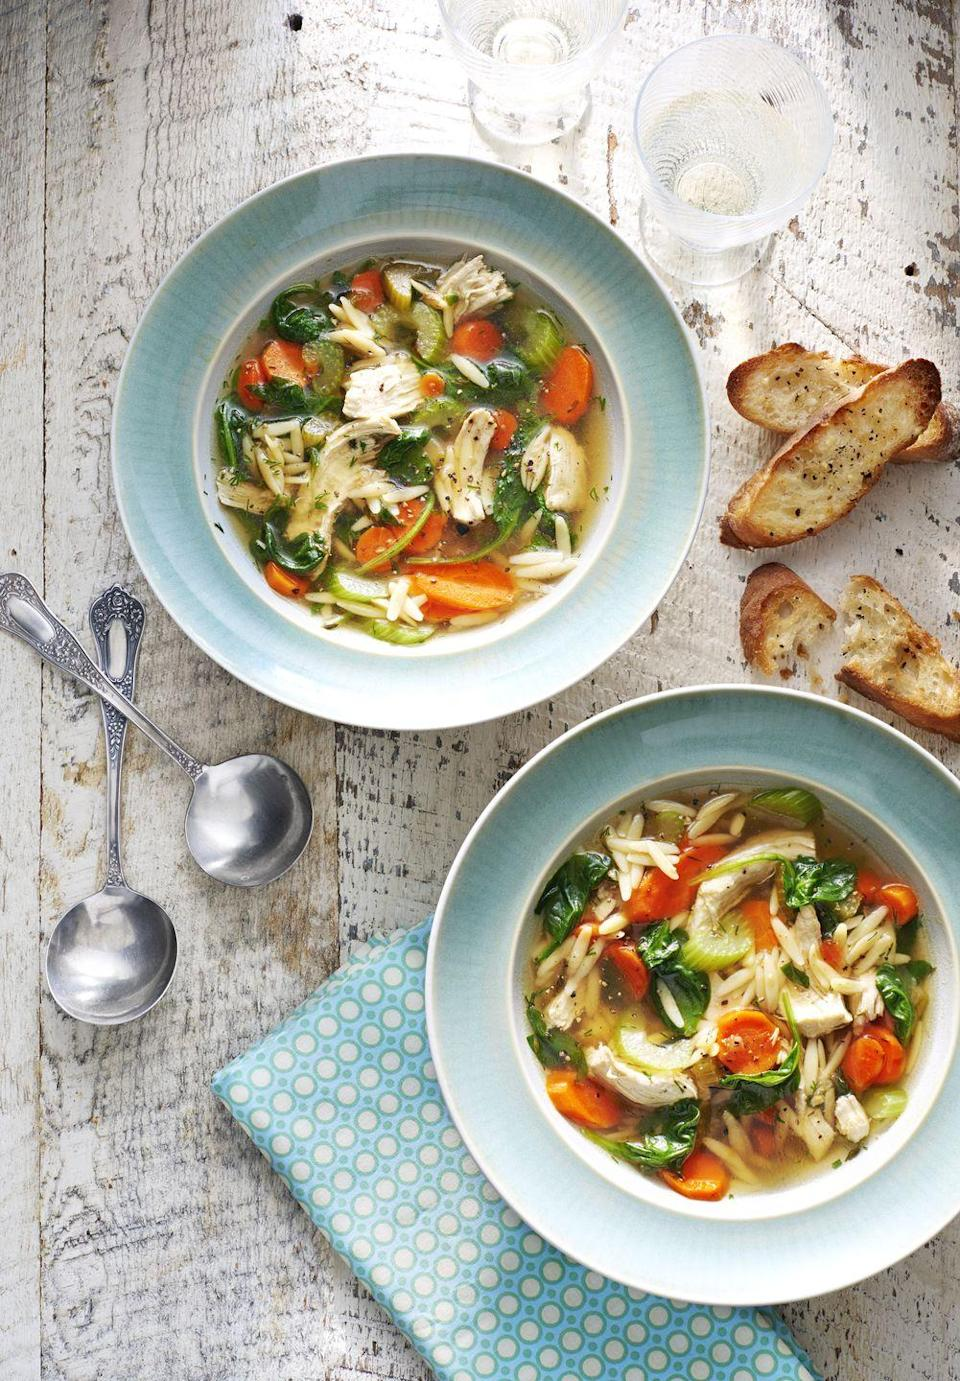 """<p>You're going to crave this Greek-style chicken soup all year long thanks to all those fresh herbs and veggies. </p><p><a href=""""https://www.goodhousekeeping.com/food-recipes/a15836/lemony-chicken-dill-soup-recipe-clx0315/"""" rel=""""nofollow noopener"""" target=""""_blank"""" data-ylk=""""slk:Get the recipe for Lemony Chicken and Dill Soup »"""" class=""""link rapid-noclick-resp""""><em>Get the recipe for Lemony Chicken and Dill Soup » </em></a><br></p>"""